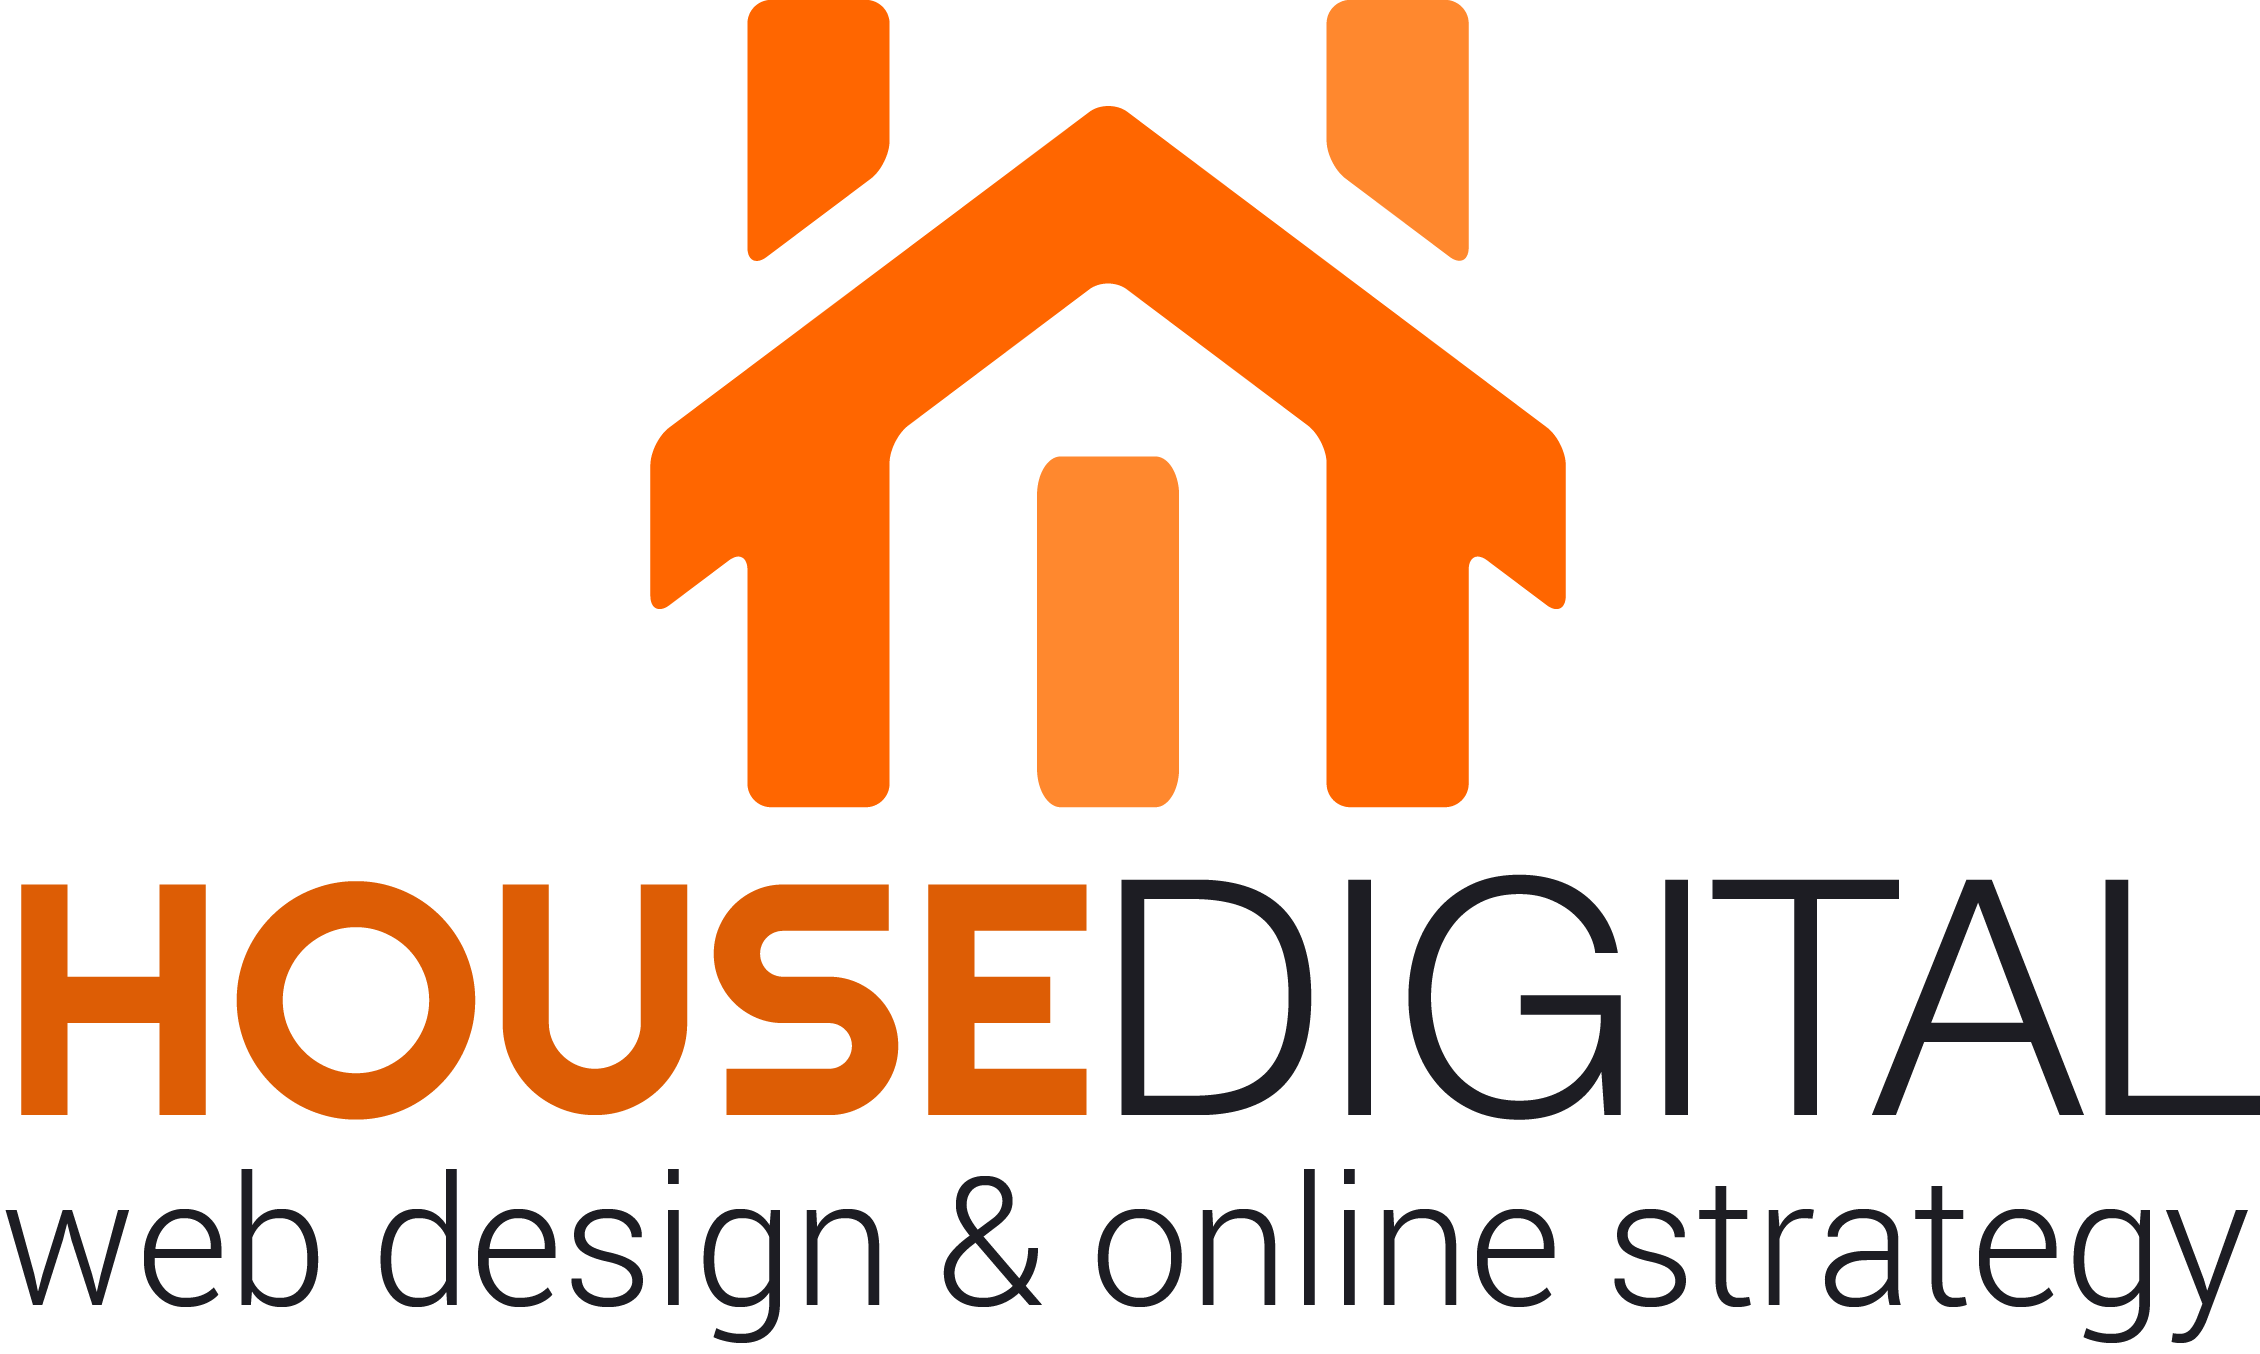 House Digital